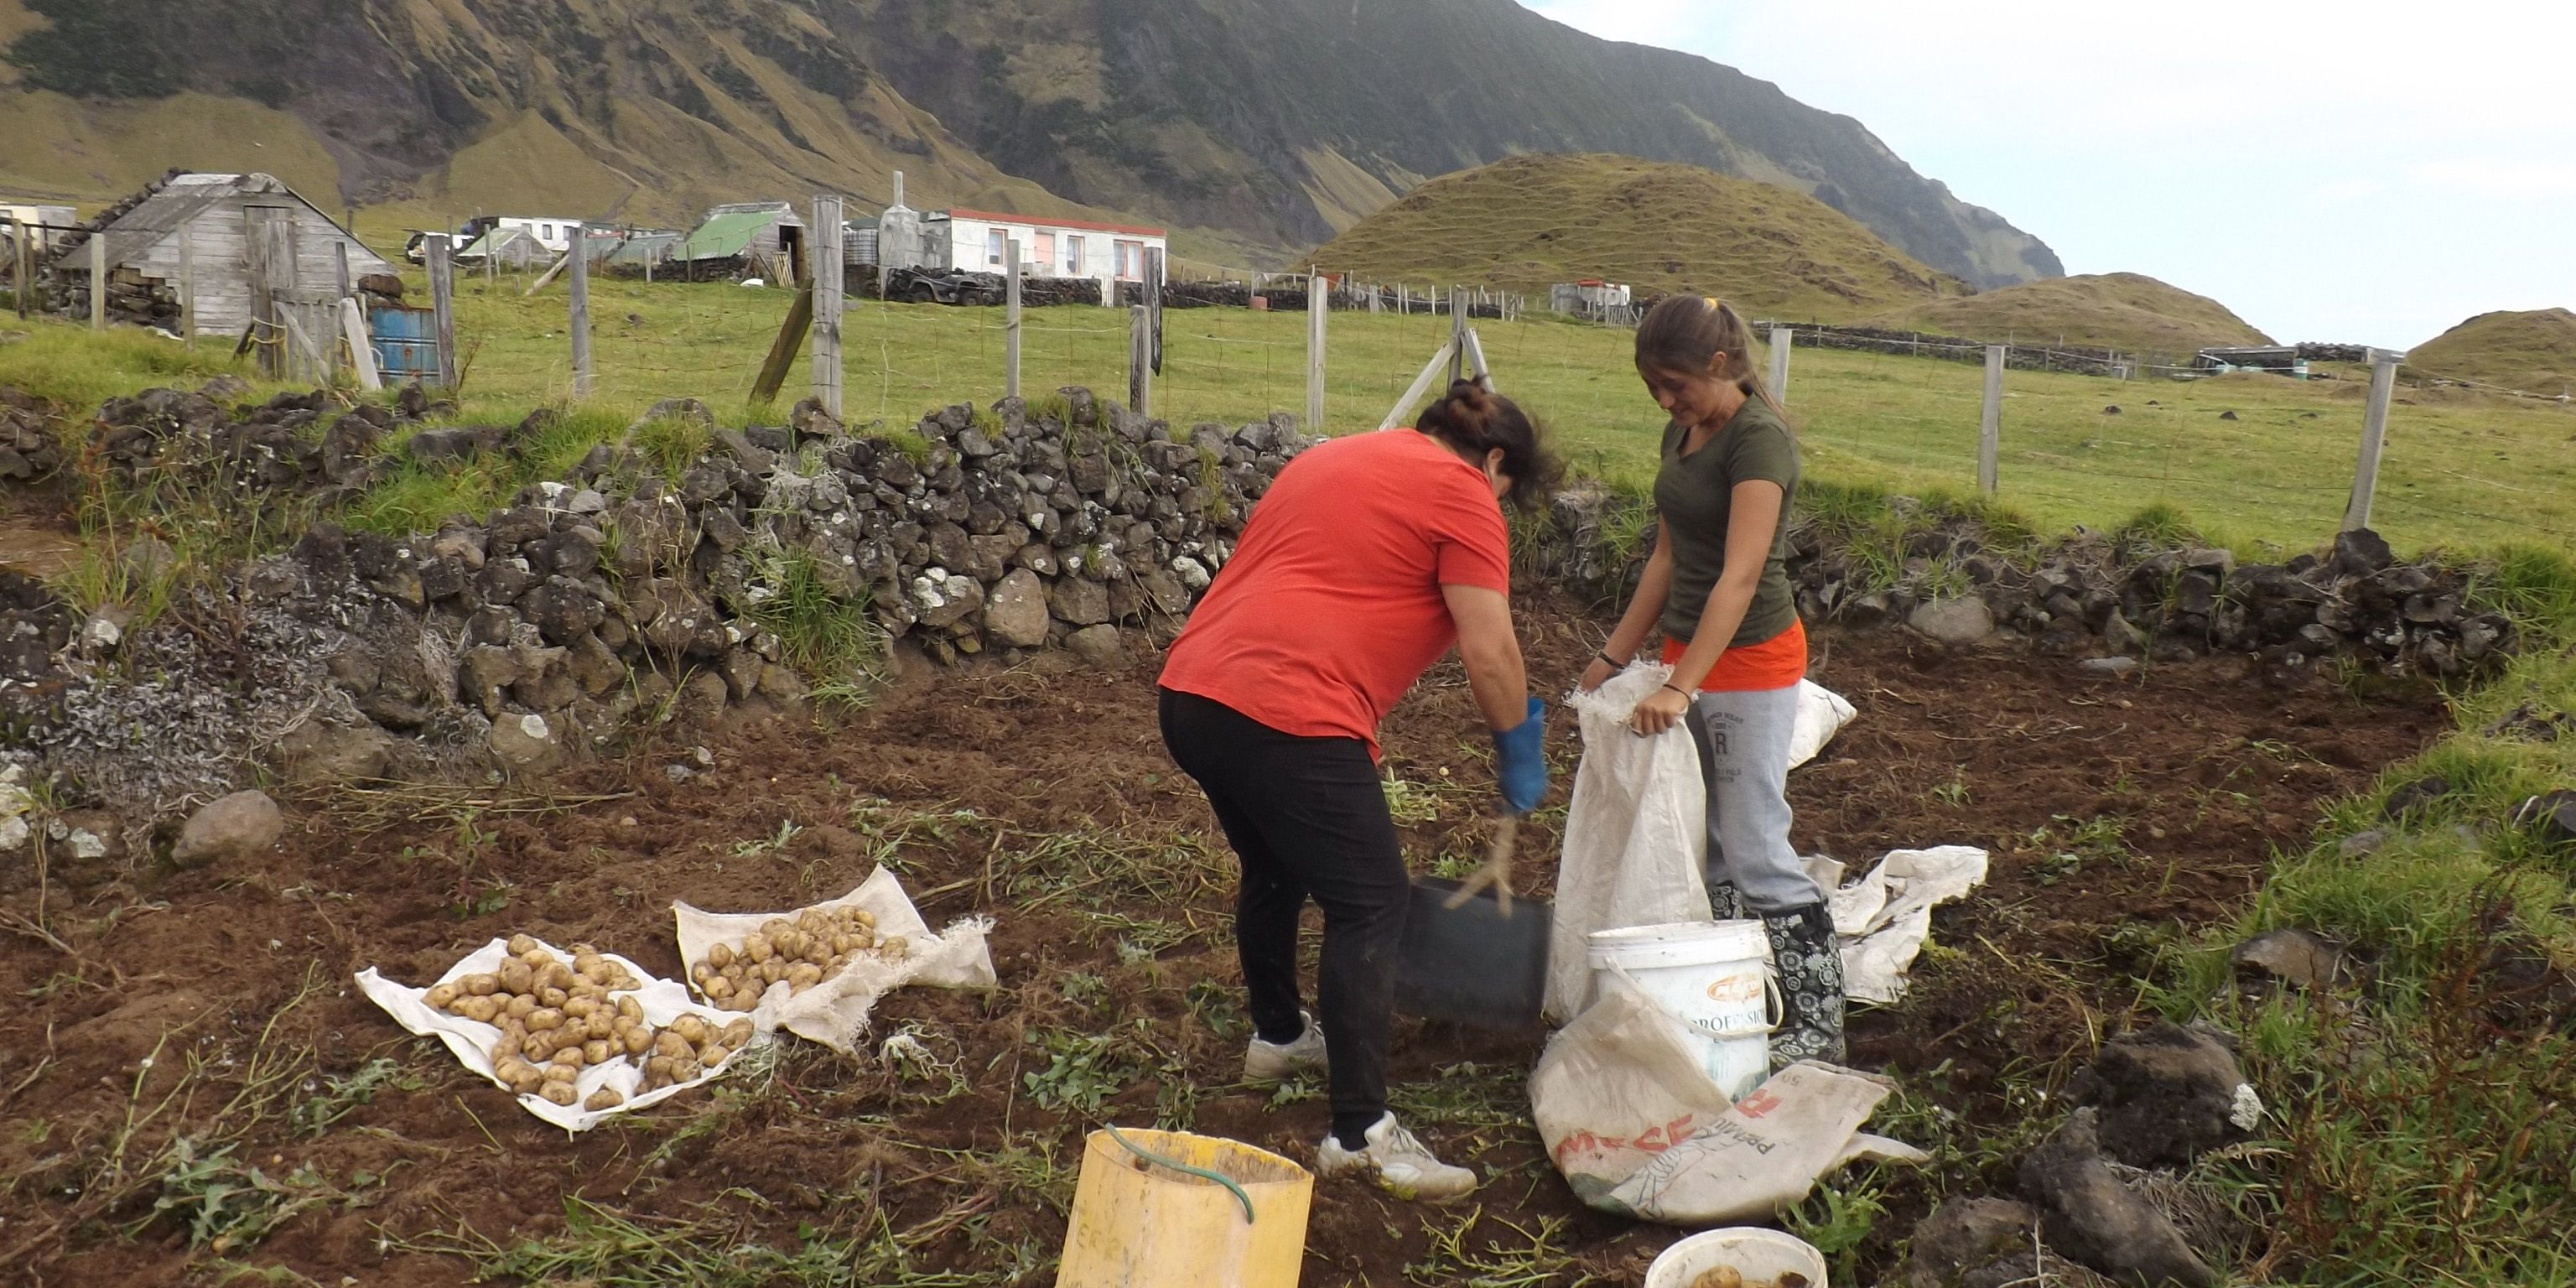 Woman and girl potato farming on remote island